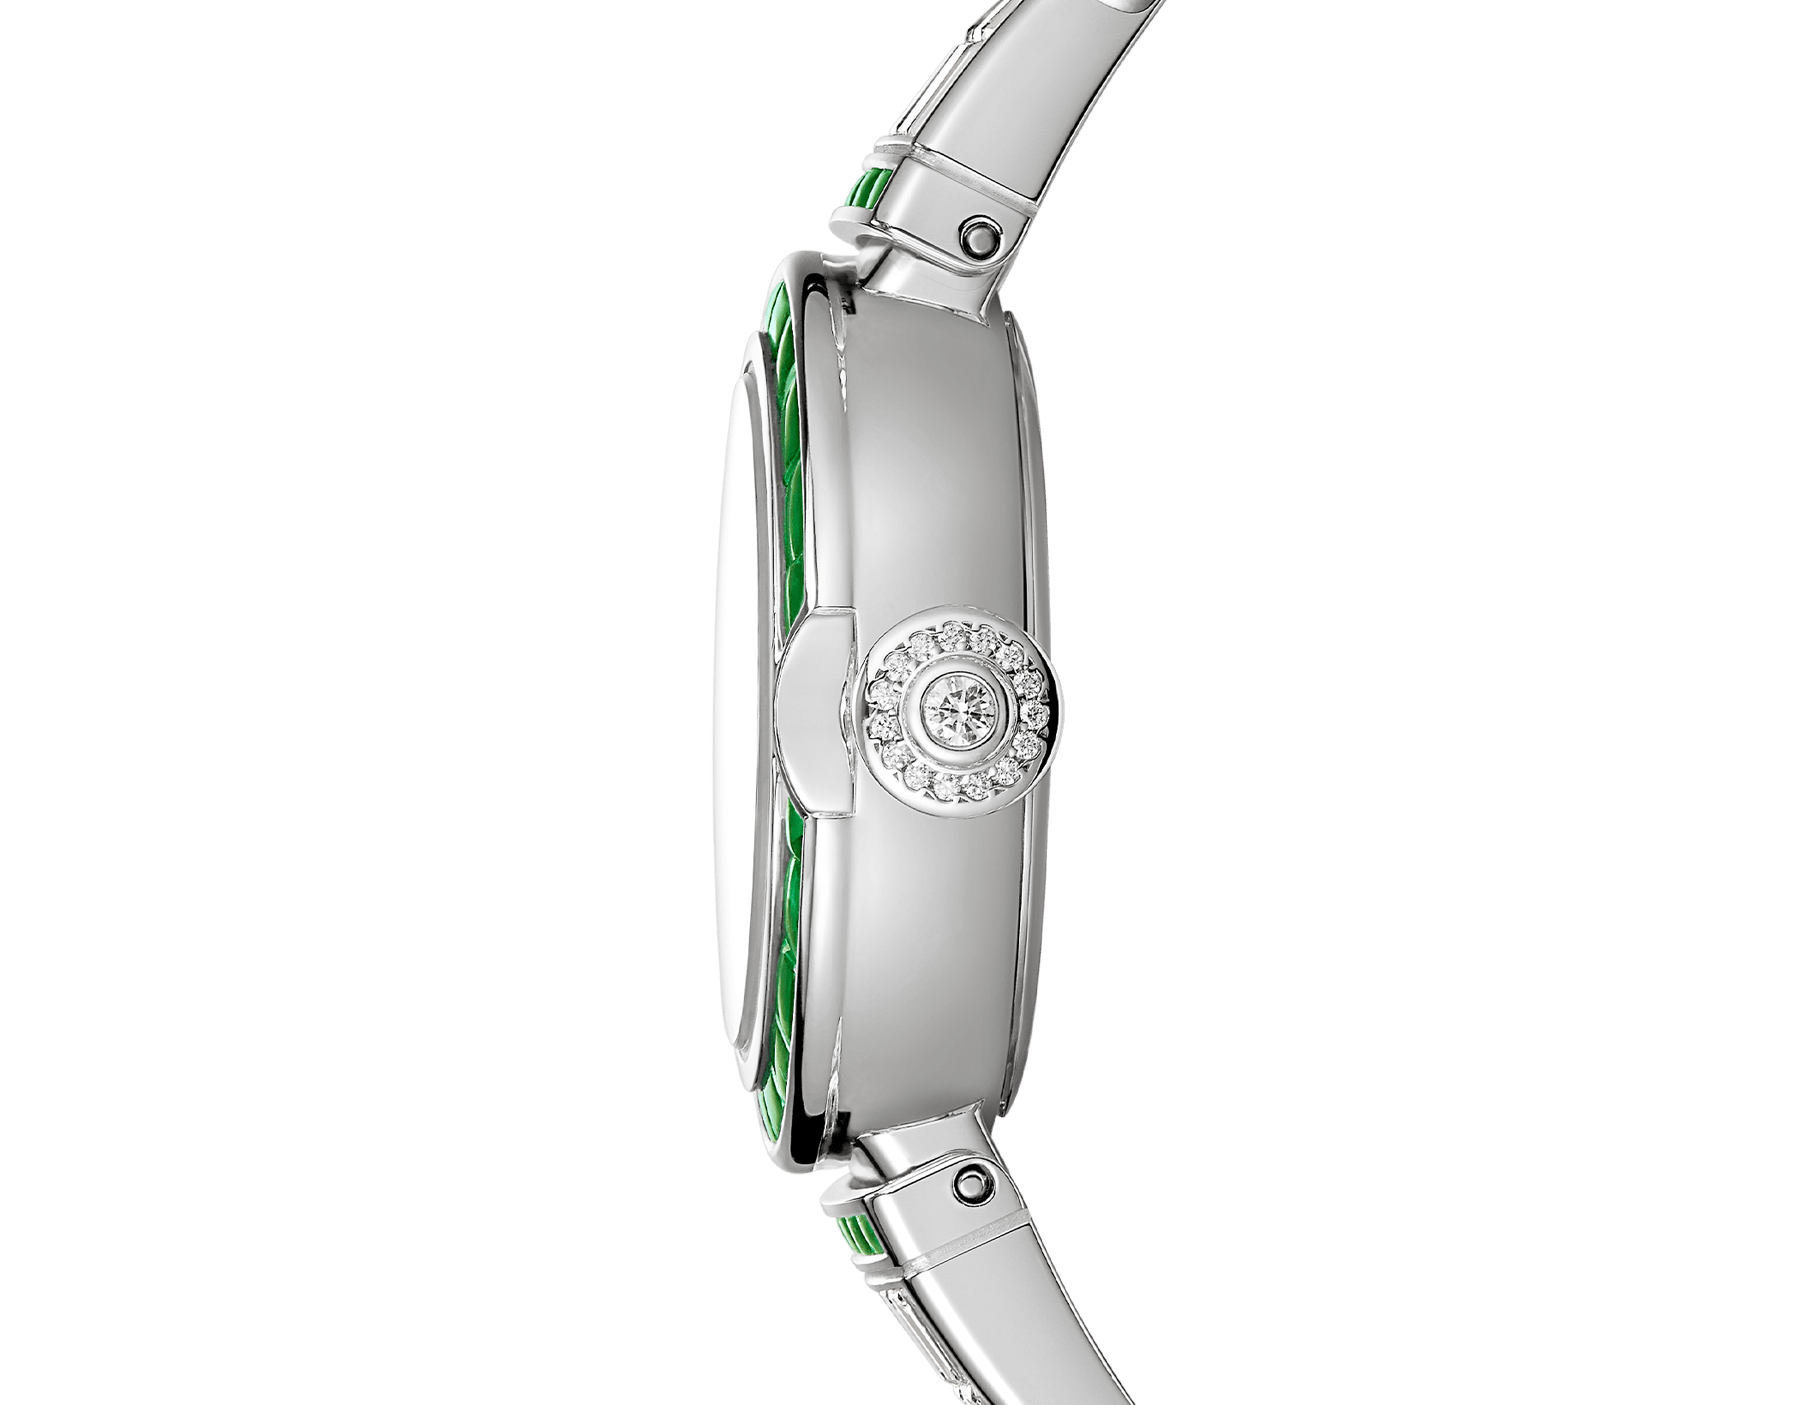 LVCEA watch in 18kt white gold case and bracelet, both set with baguette diamonds and emeralds and full diamond dial. 102466 image 3